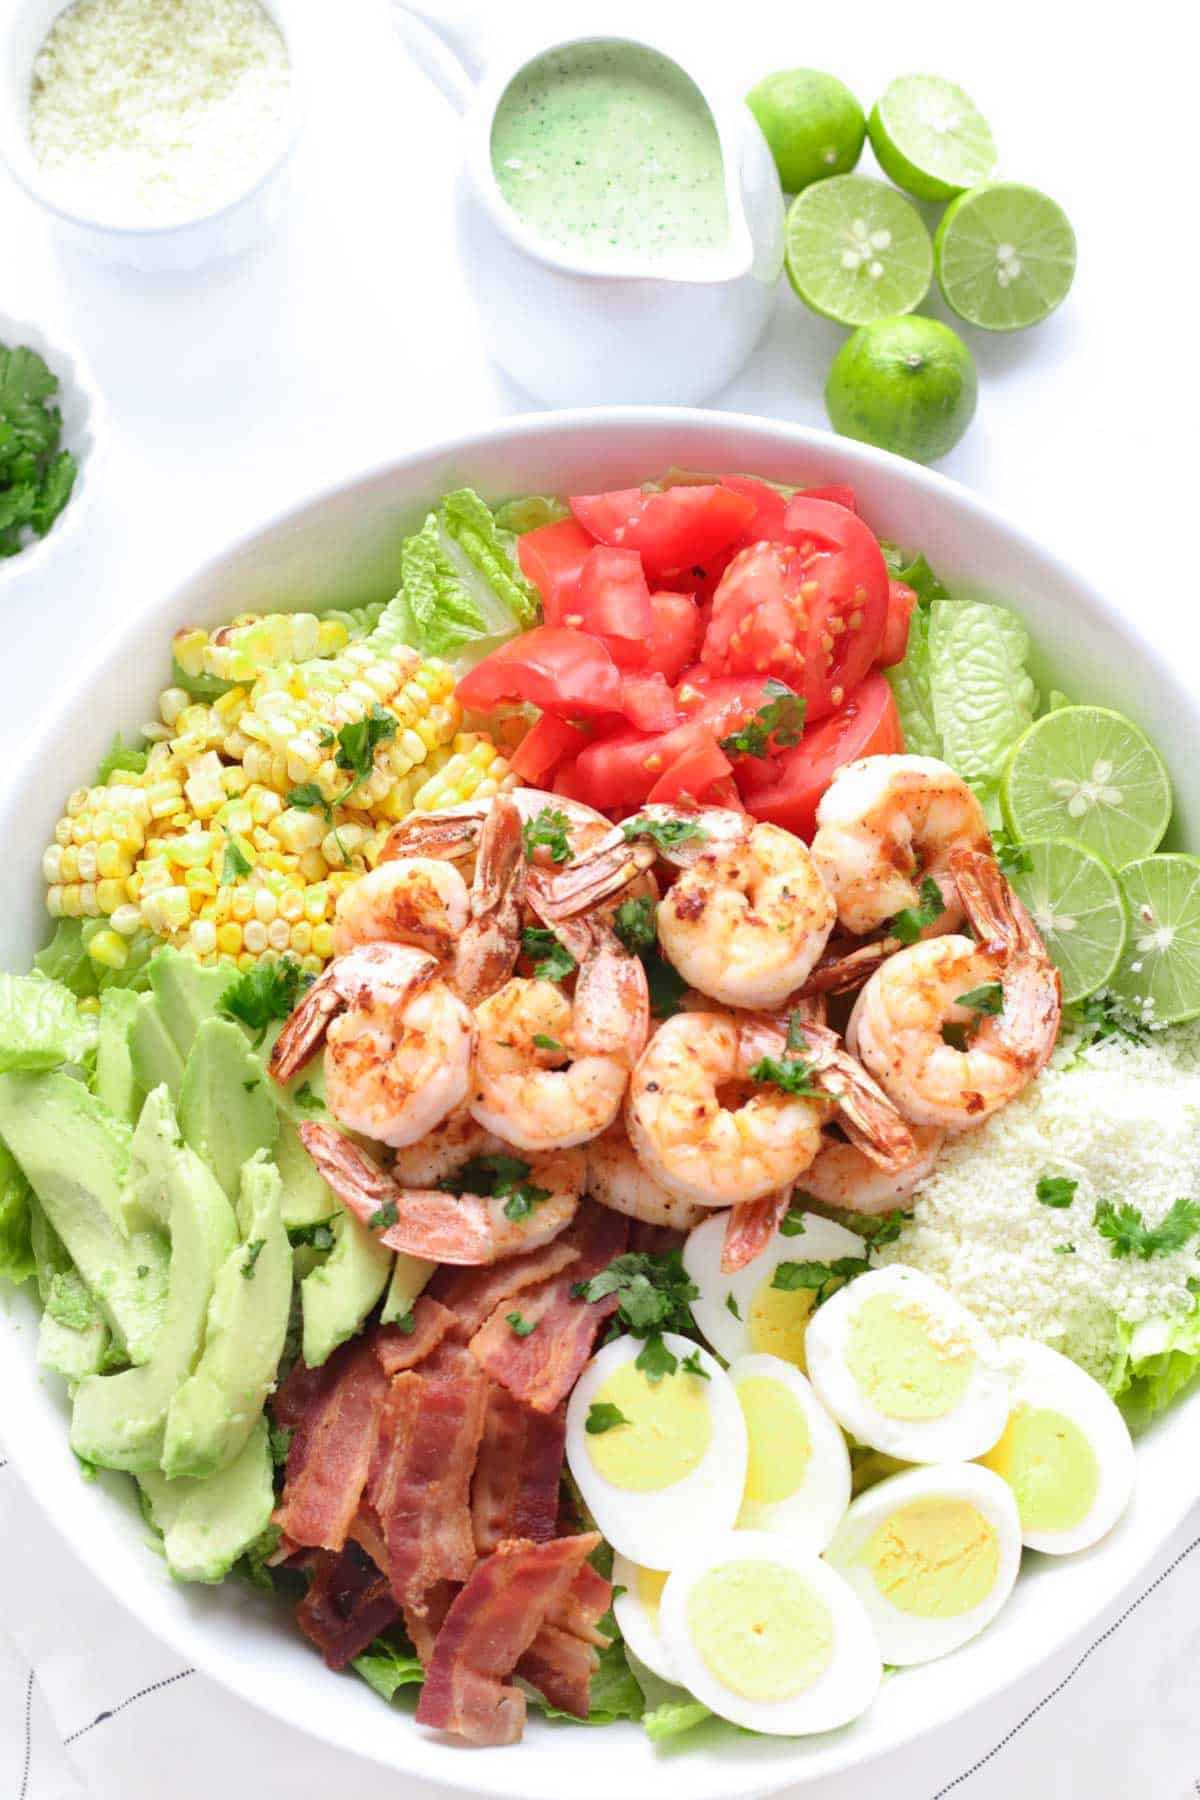 Shrimp Cobb Salad with hard boiled eggs, bacon, limes, tomatoes, avocado, cotija cheese, grilled corn, in a white serving bowl with a pitcher of cilantro lime dressing next to it